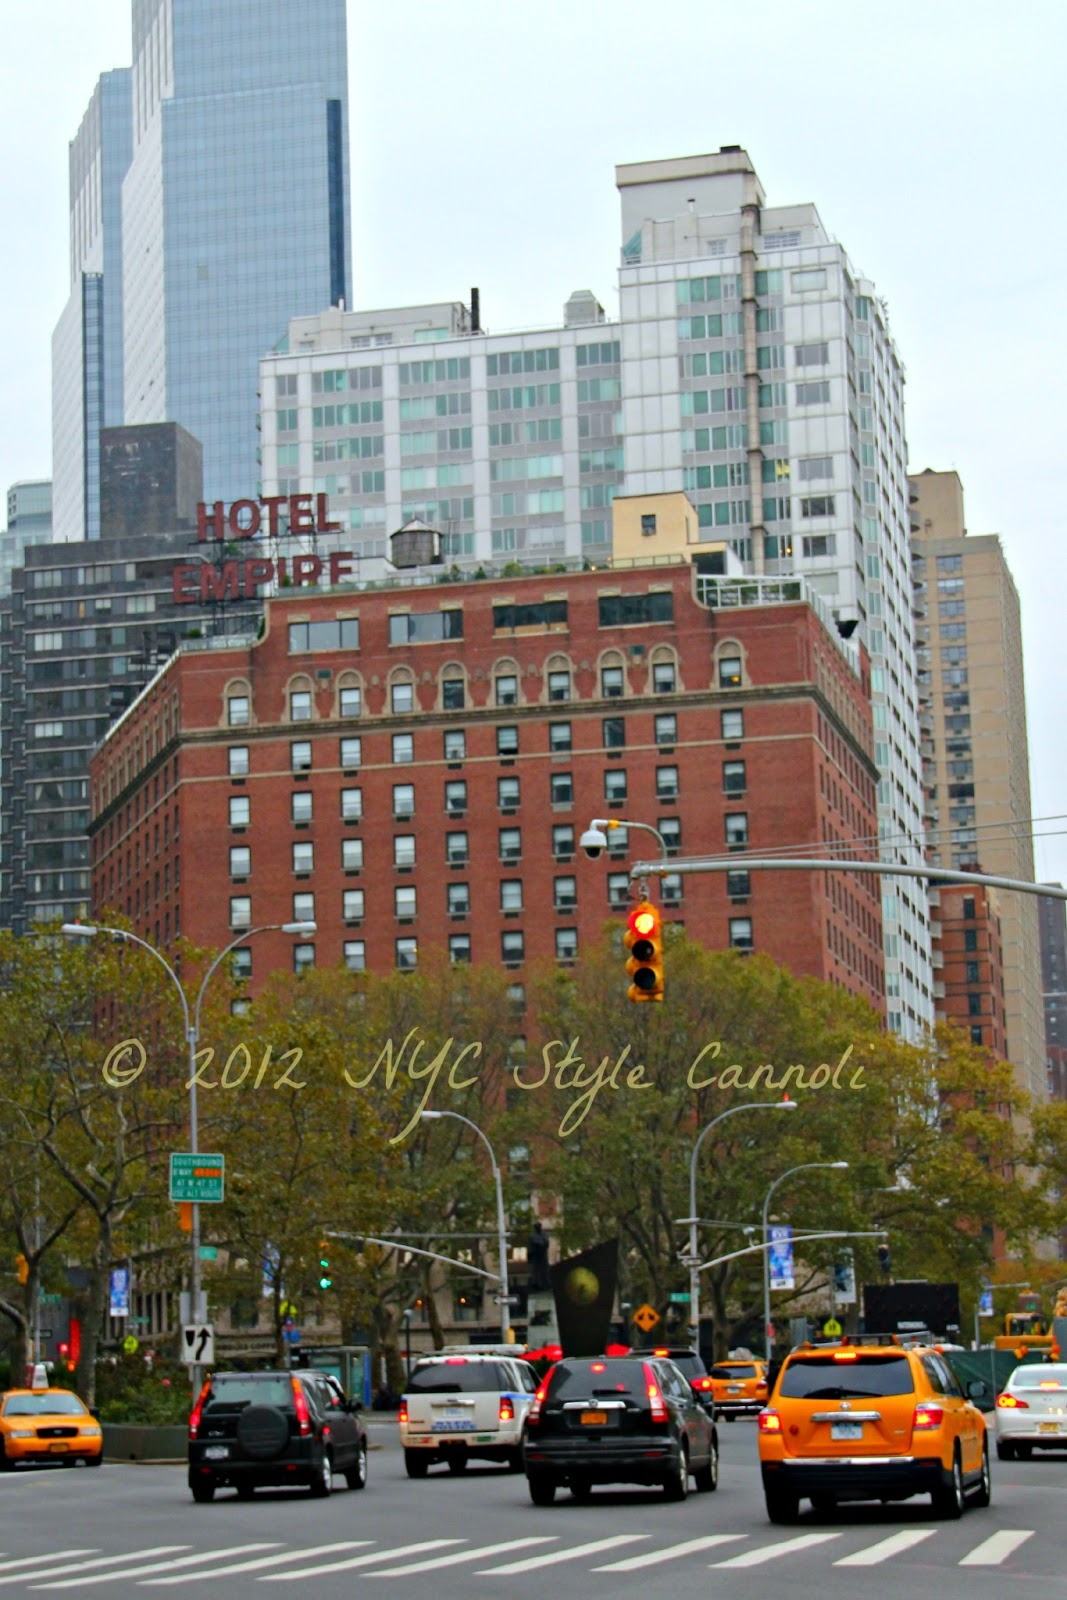 The Empire Hotel | NYC, Style & a little Cannoli